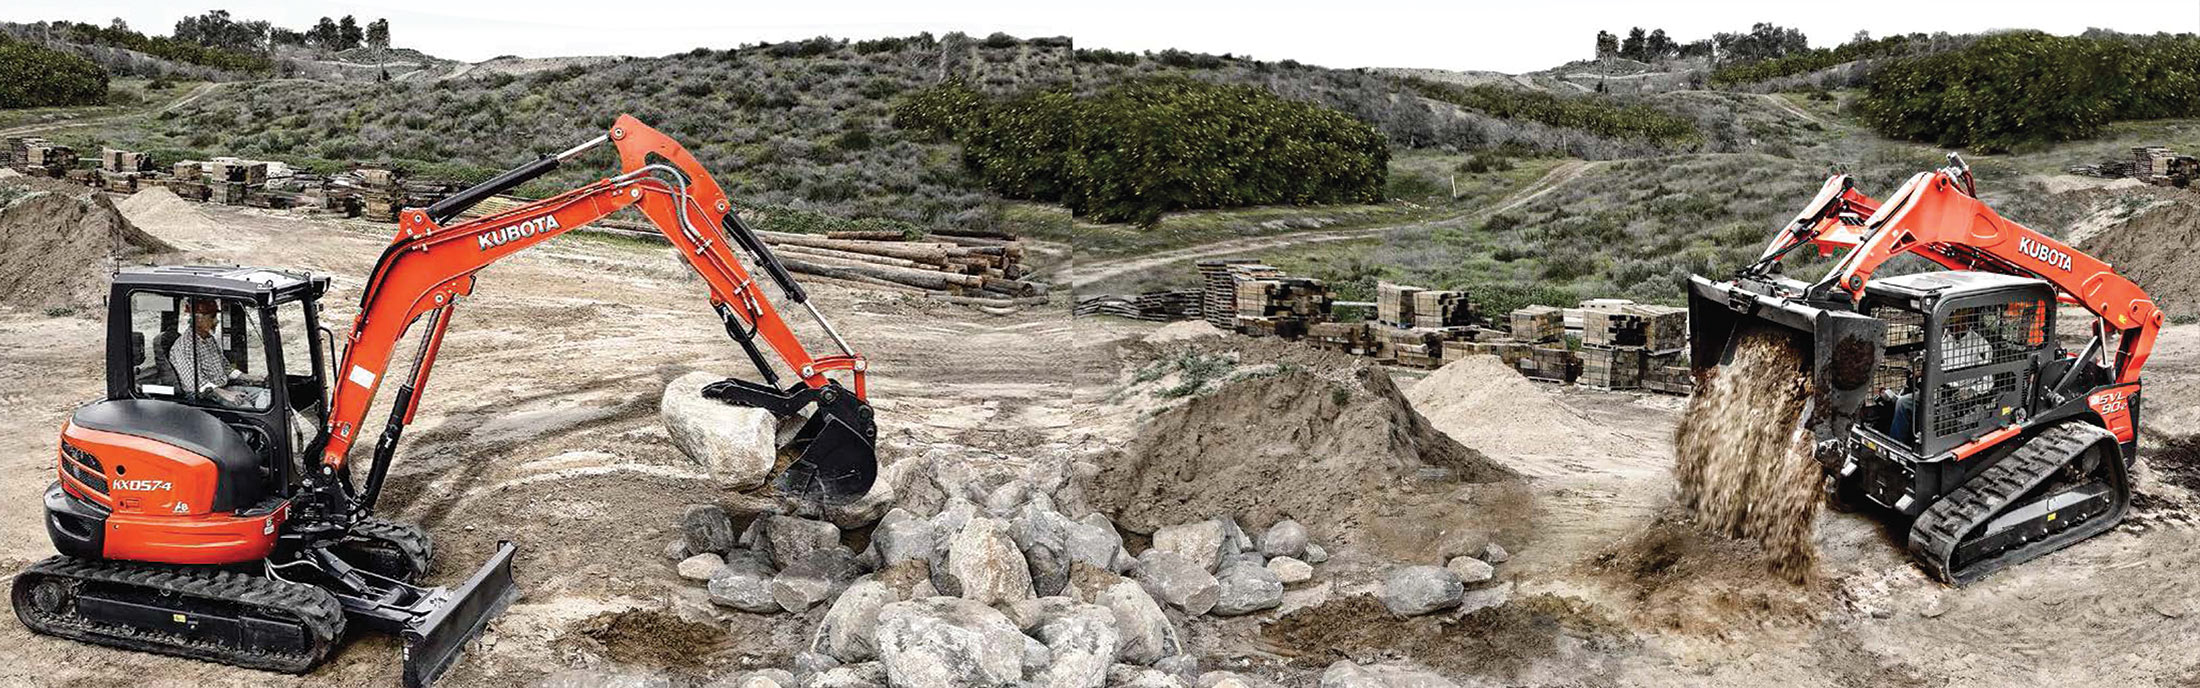 Commercial Tractors and Construction Equipment